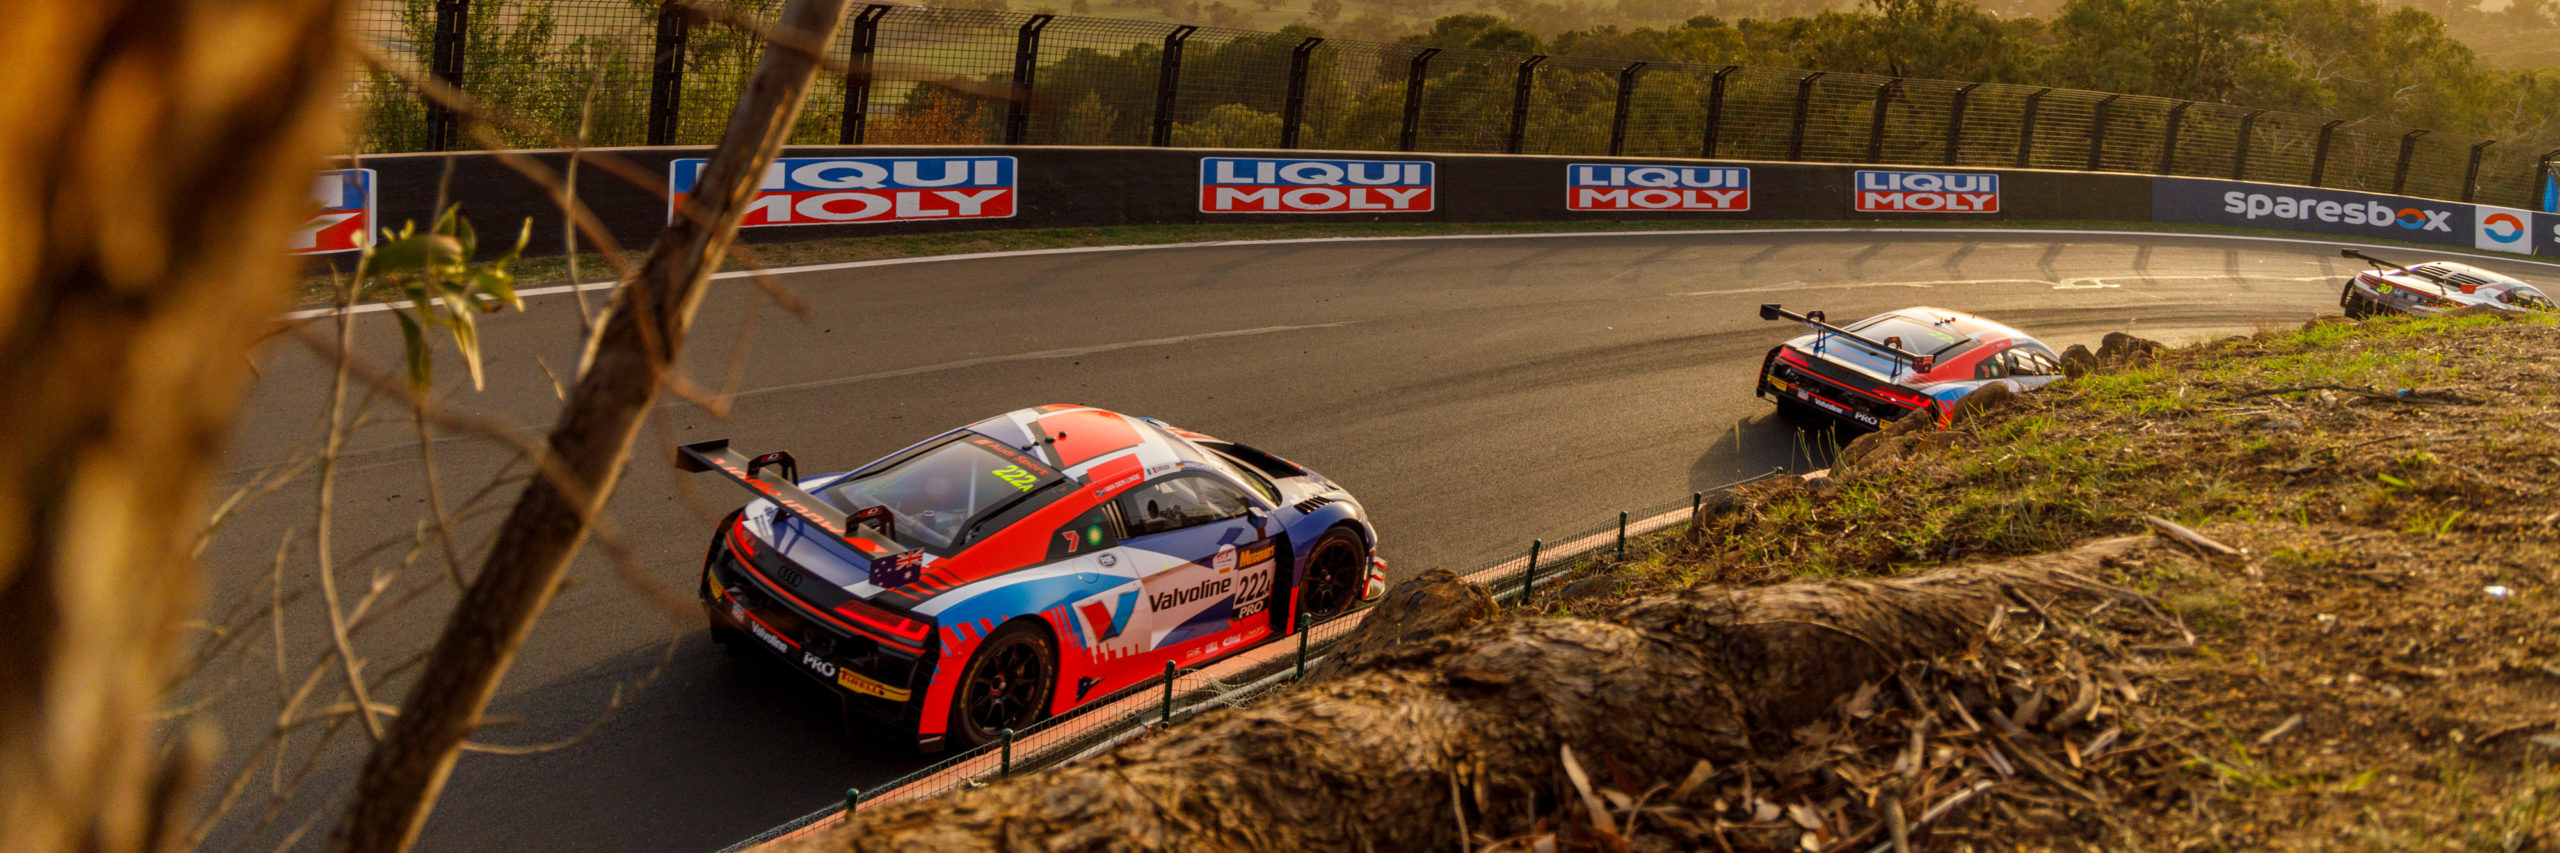 Bathurst 12 Hour slide 3